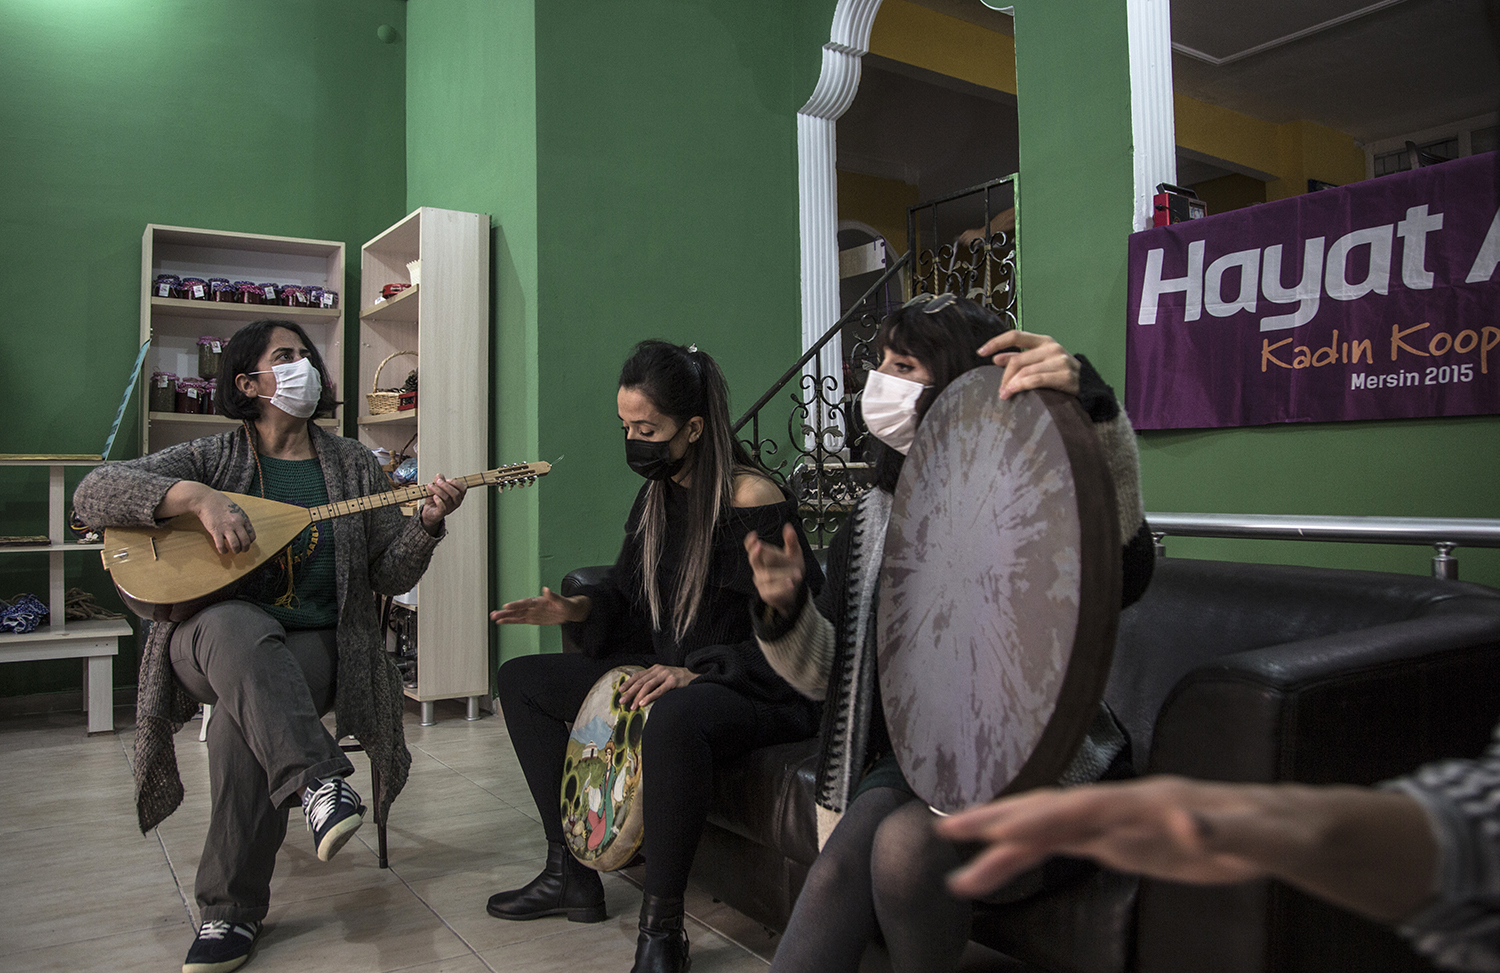 Guzel practices with the members of her group in a makeshift space in the city center of Mersin on Nov. 23, 2020.